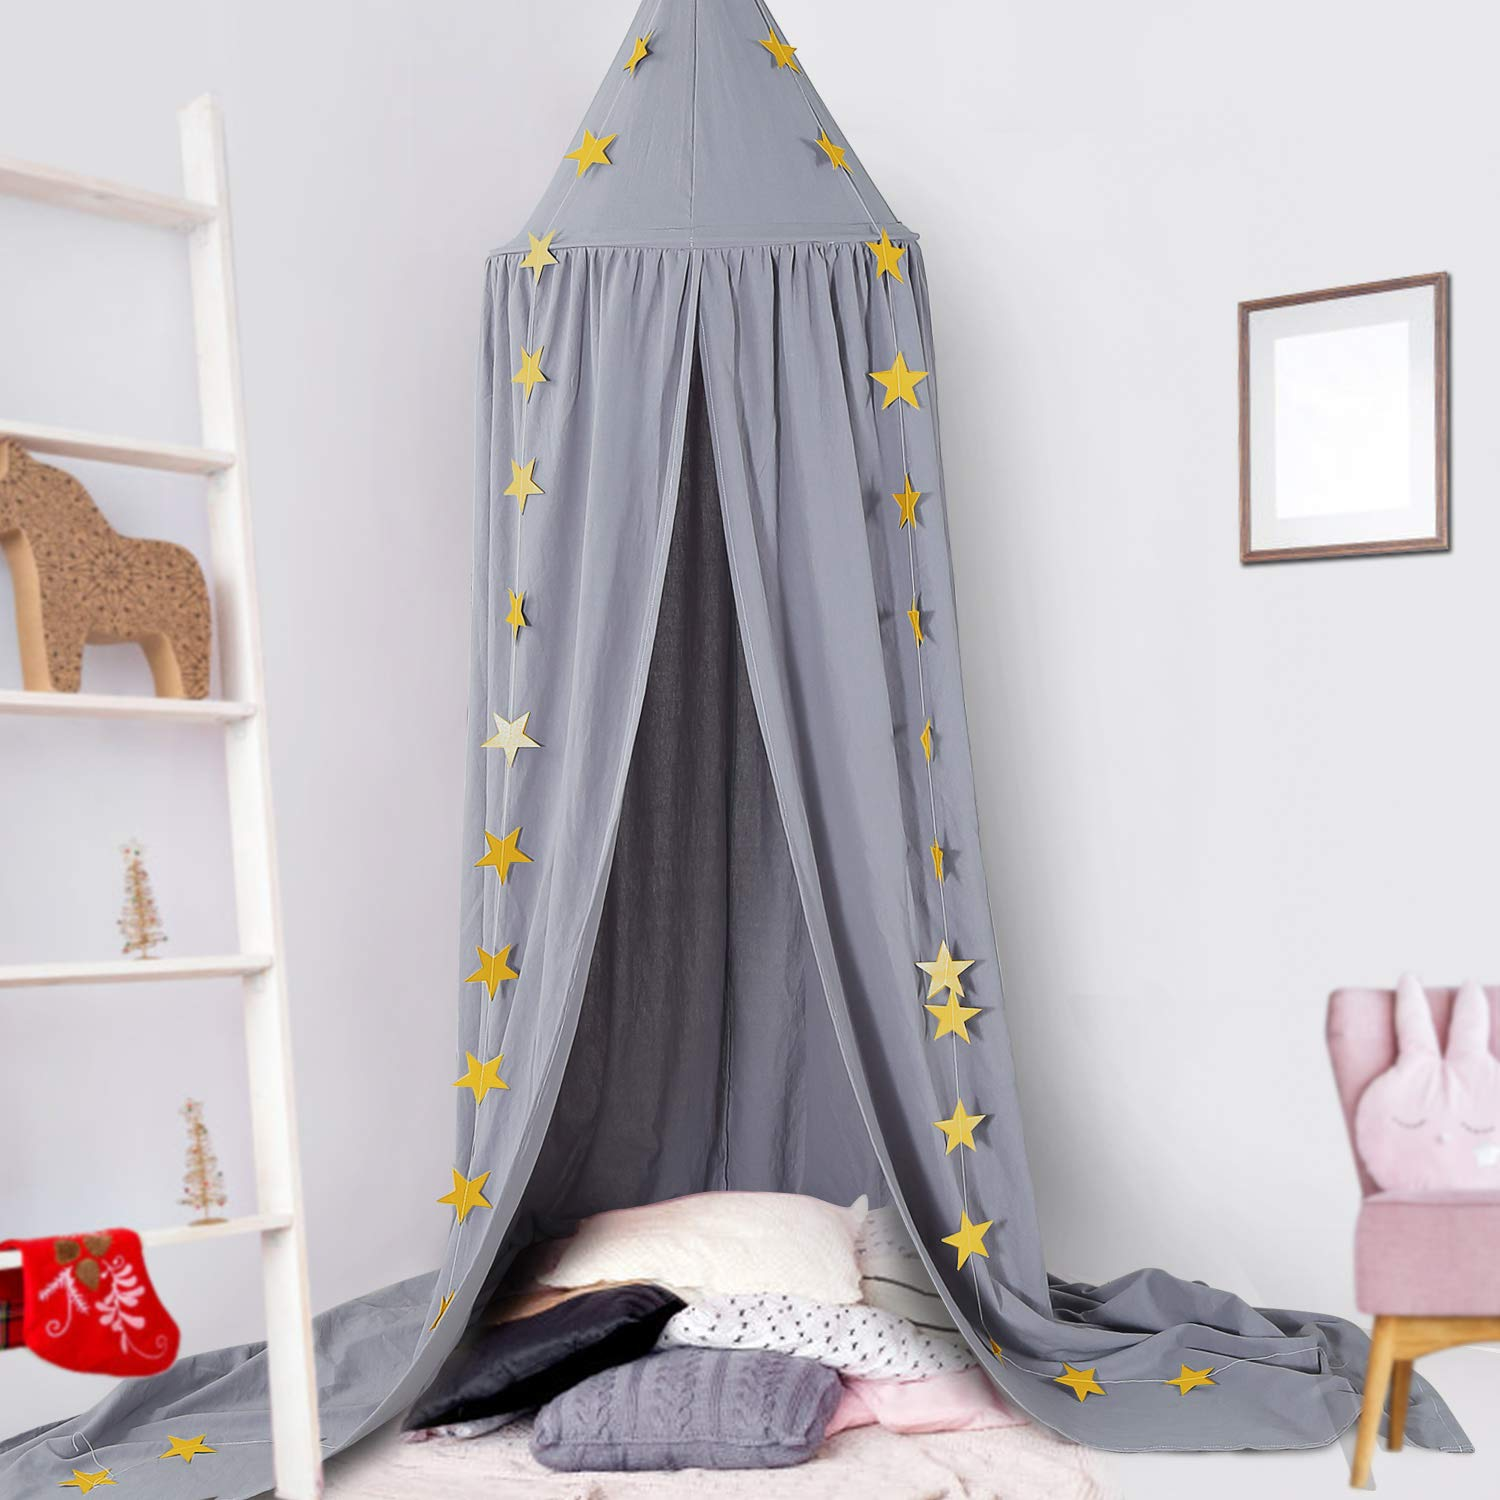 Ceekii Kids Bed Canopy Dome Hook Cotton Mosquito Nets Children's Room Bedroom Games Reading Tent Nursery Play Room Decor (Gray)